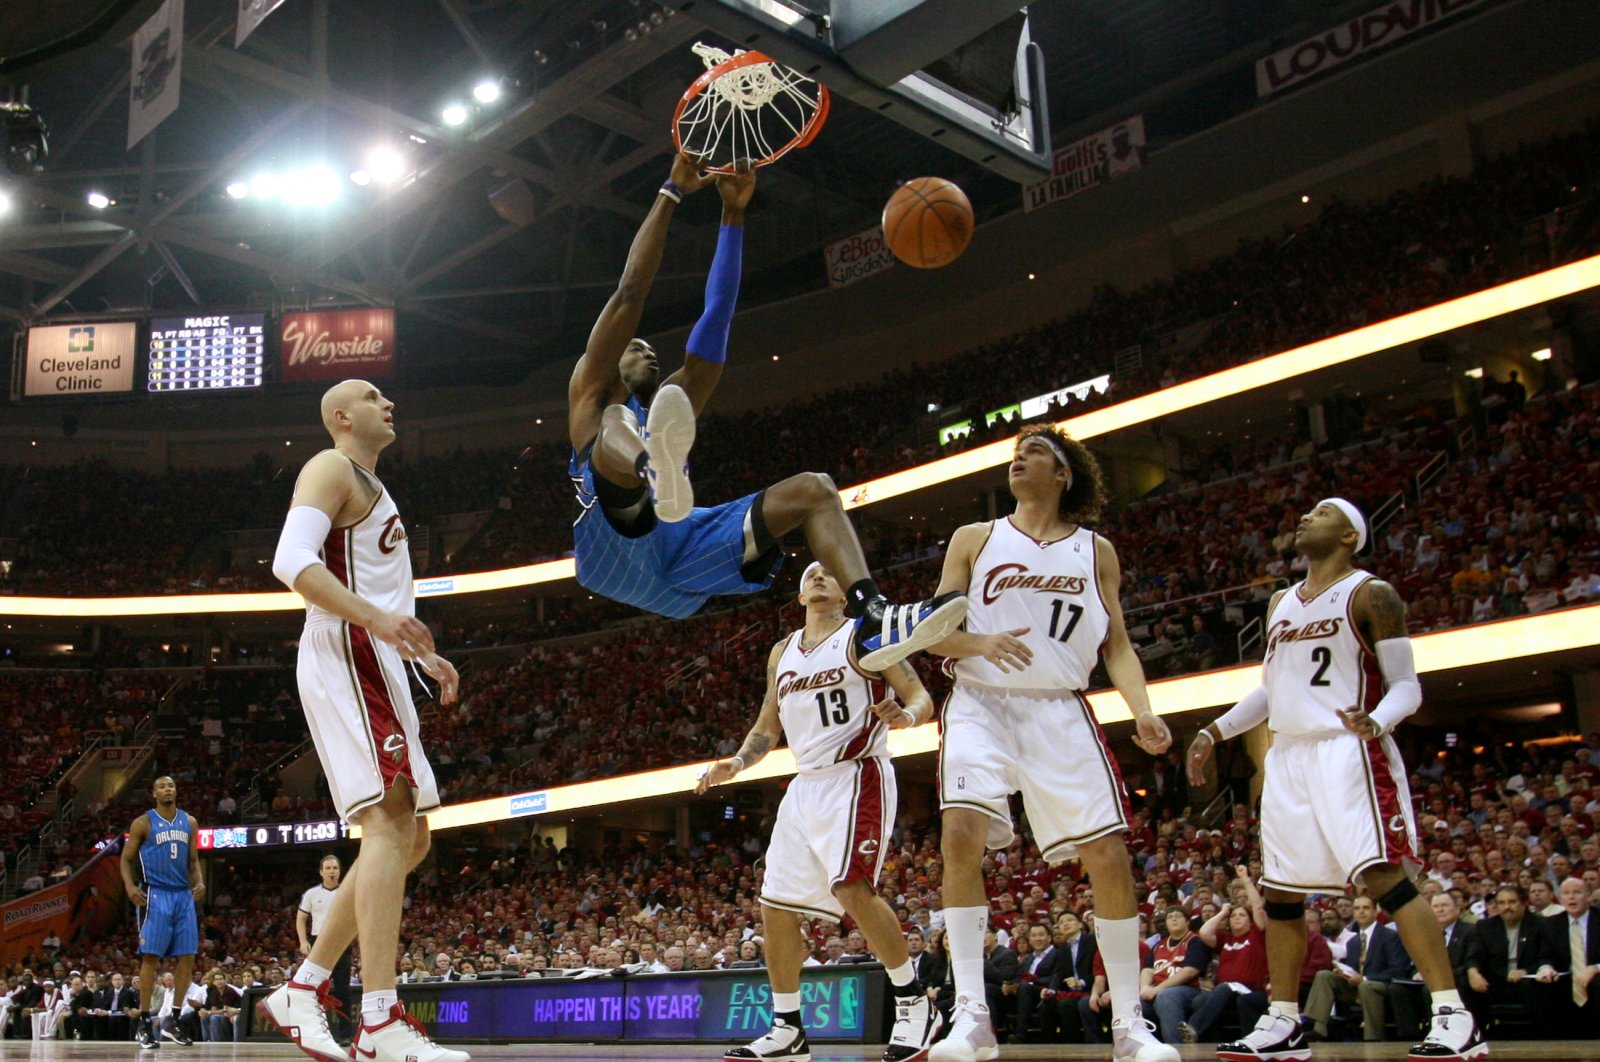 Orlando Magic center Dwight Howard knocks the 24-second clock off the backboard with a ferocious dunk during his side's 107-106 victory against Cleveland Cavaliers, May 20, 2009. (Reuters Photo)